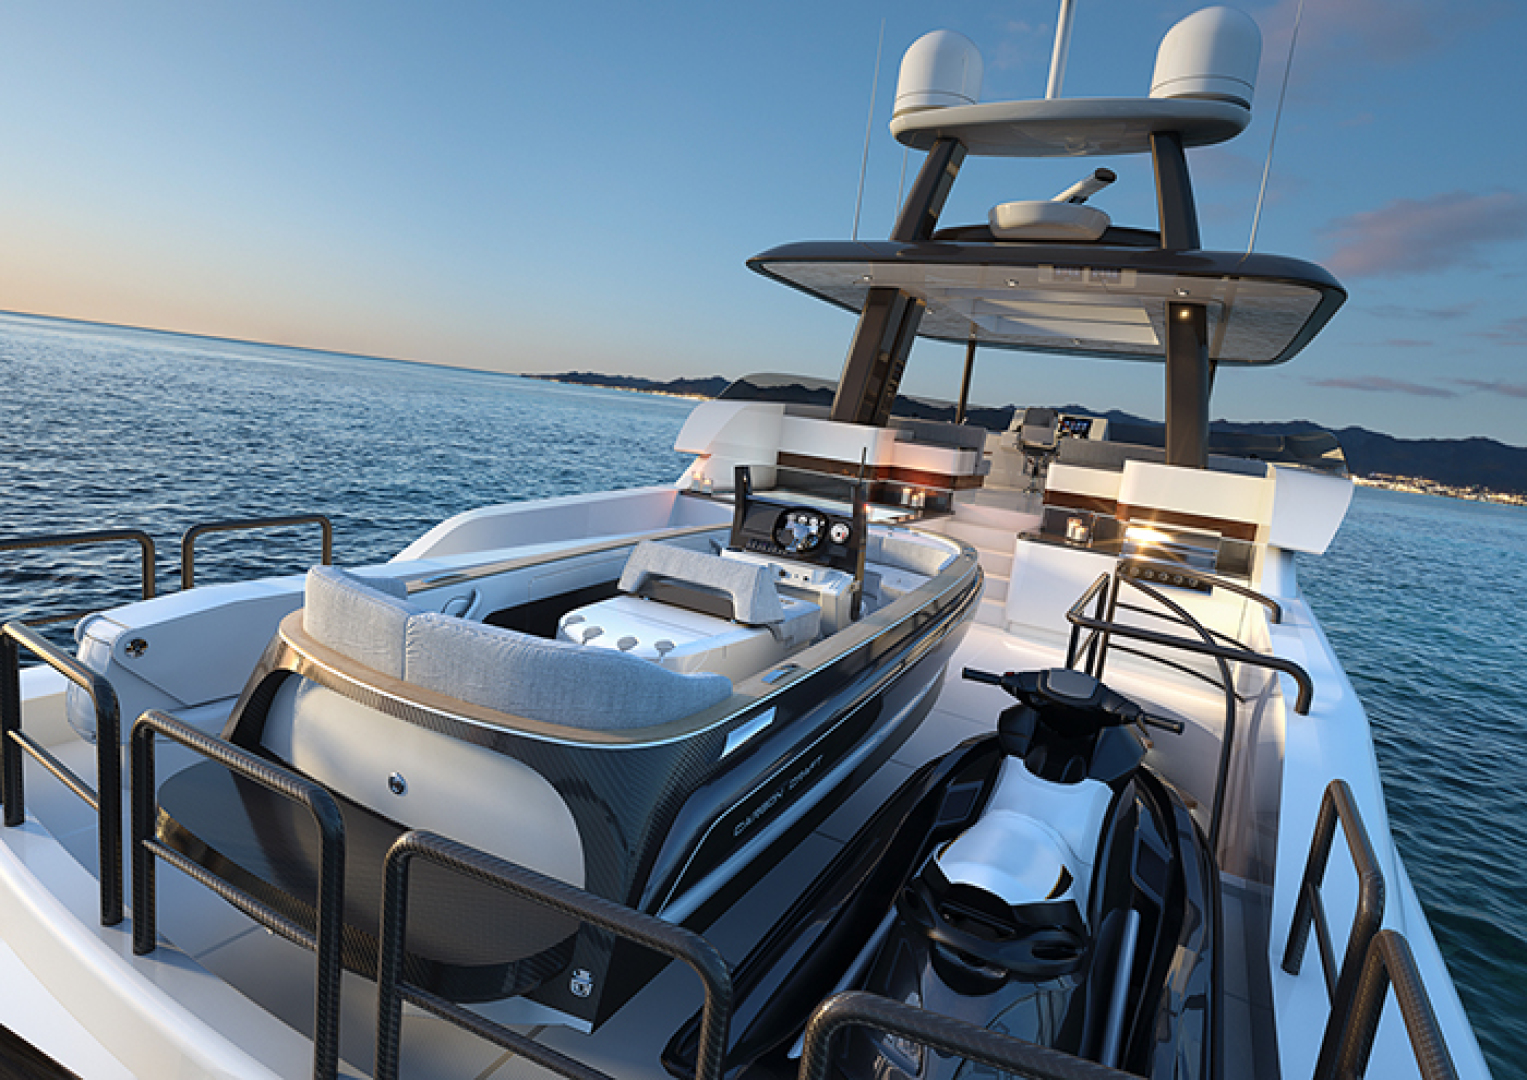 Crescent-110 Fast Pilothouse Yacht 2022-CRESCENT 110 Vancouver-British Columbia-Canada-BOAT DECK-1091486 | Thumbnail